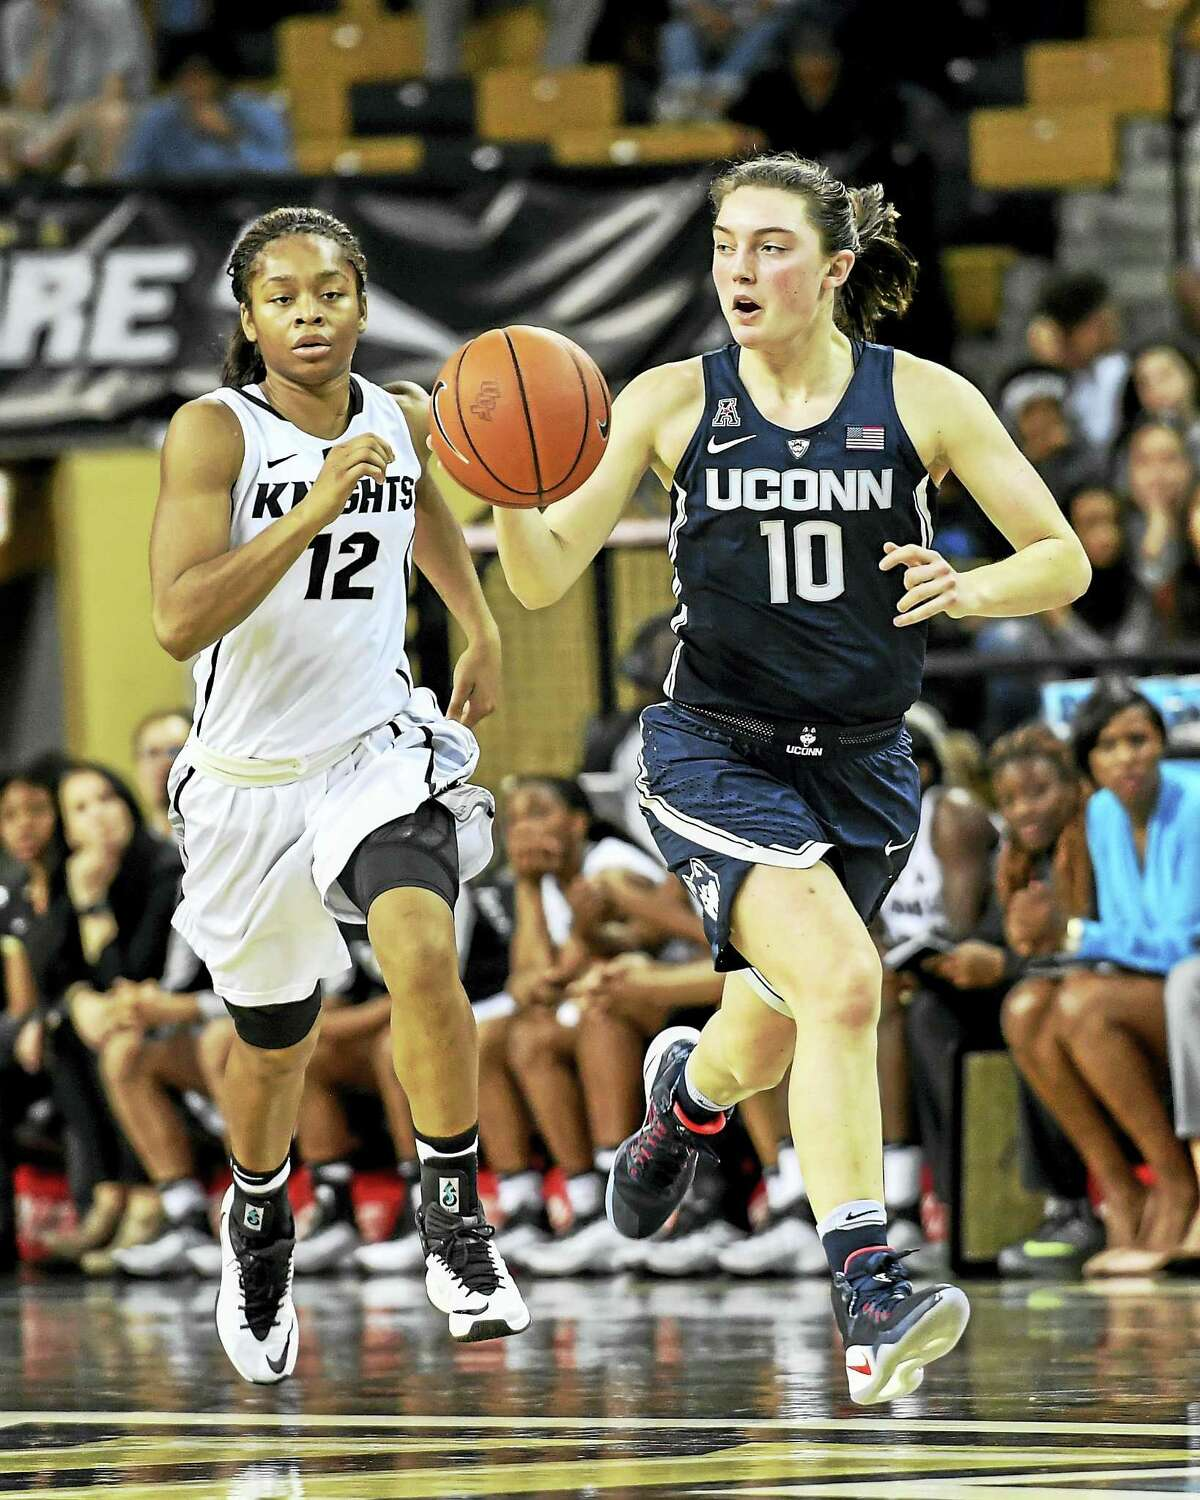 Connecticut guard Molly Bent (10) dribbles away from Central Florida forward Nyala Shuler (12) as she leads the break during the second half of an NCAA college basketball game, Sunday, Jan. 1, 2017, in Orlando, Fla. Connecticut defeated UCF 84-48. (AP Photo/Roy K. Miller)